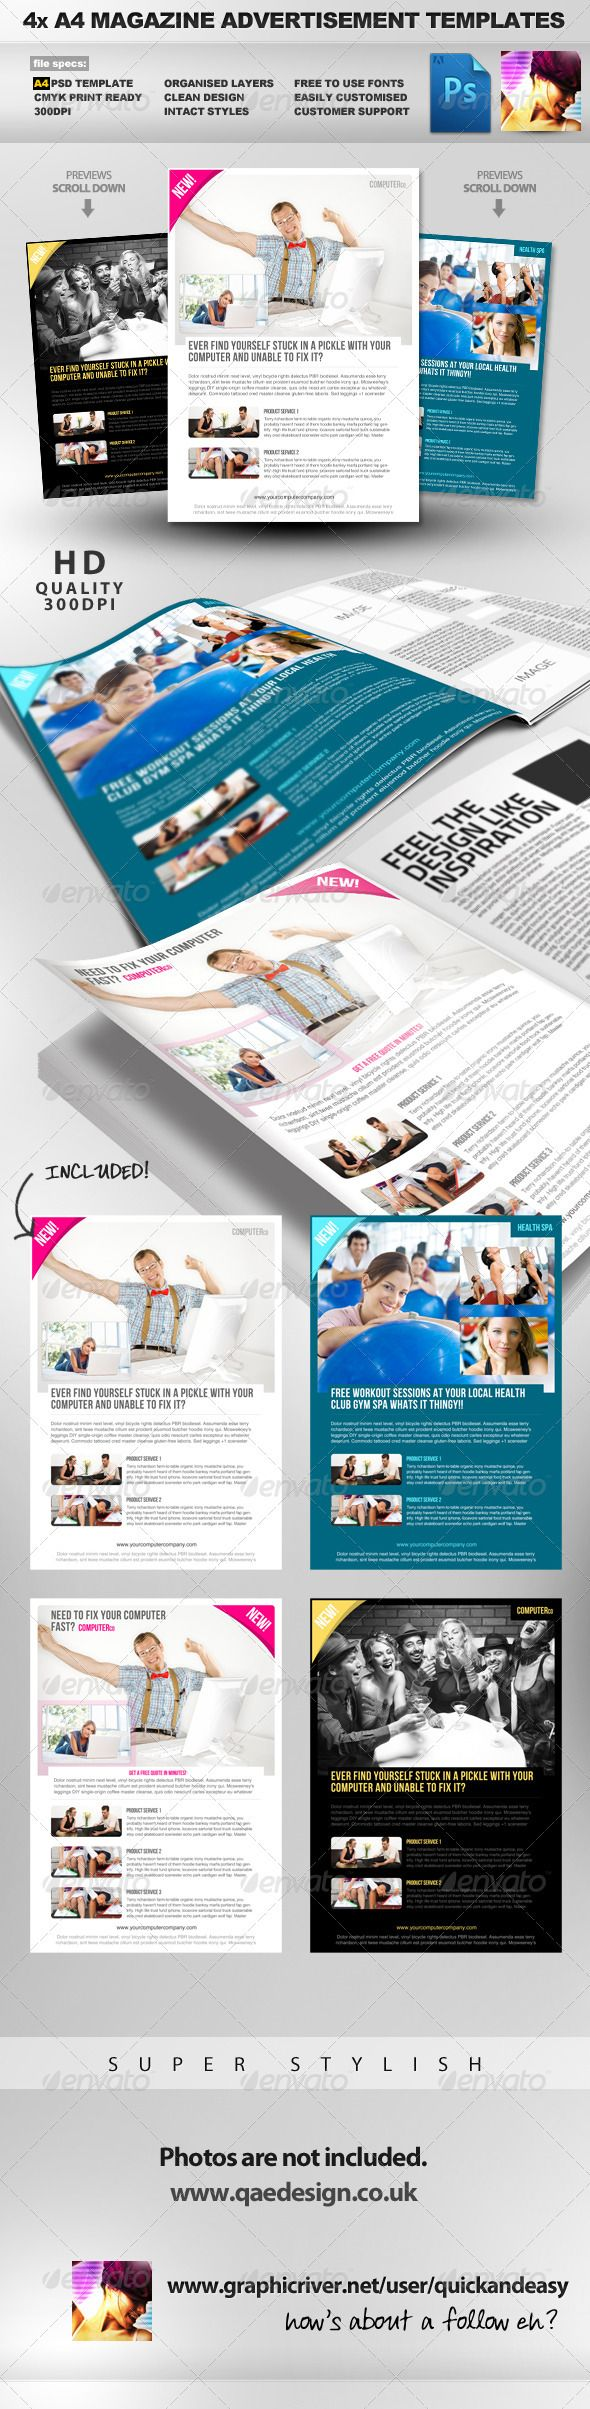 product service a psd magazine advertisement business women magazine advertisement layout clean crisp easy multiuse psd magazine advert template perfect for any ty